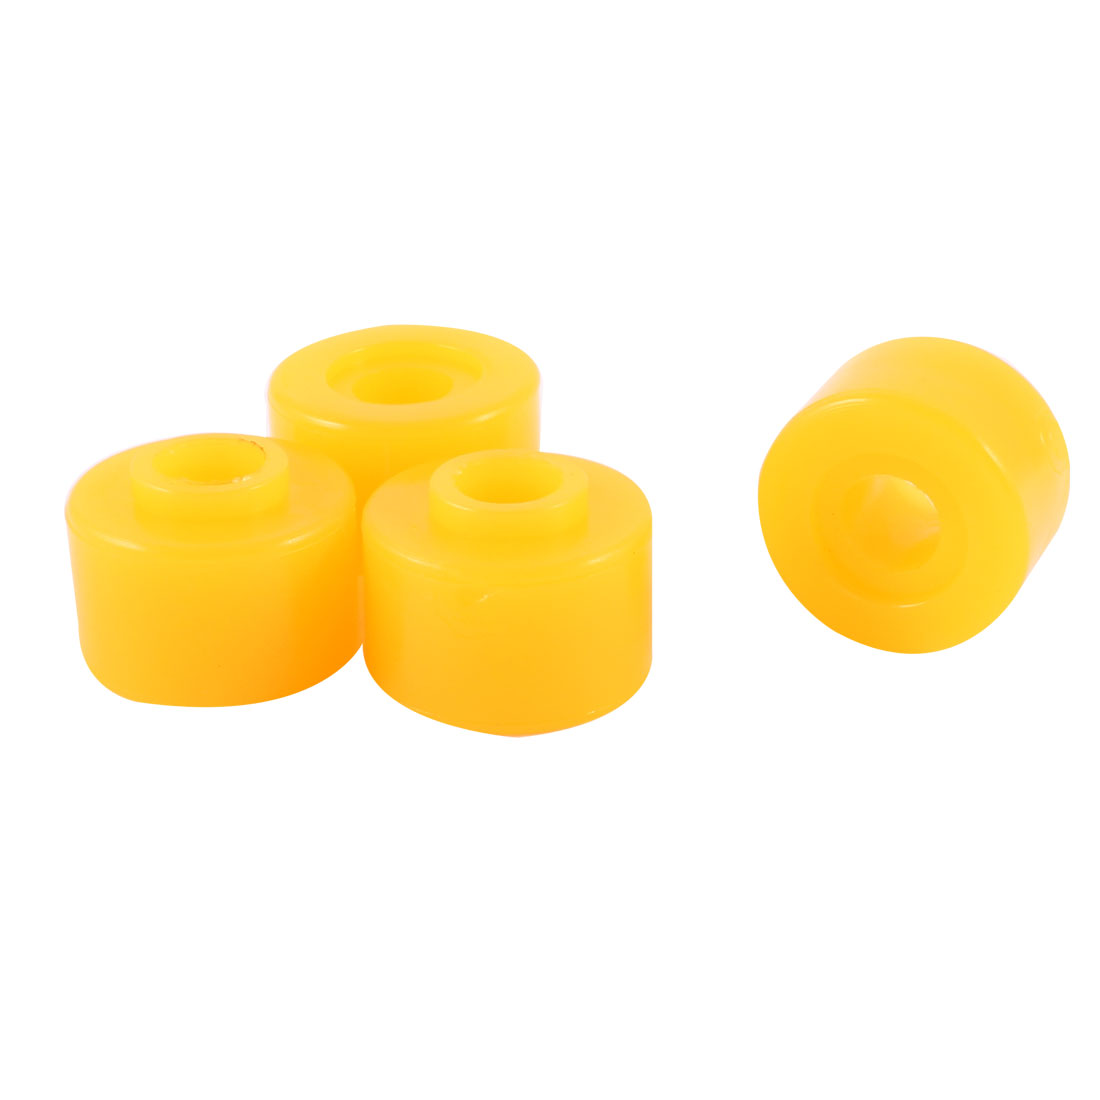 "4 Pcs 0.39"" Inside Dia Orange Rubber Shock Absorber Bushings Damper Assembly"